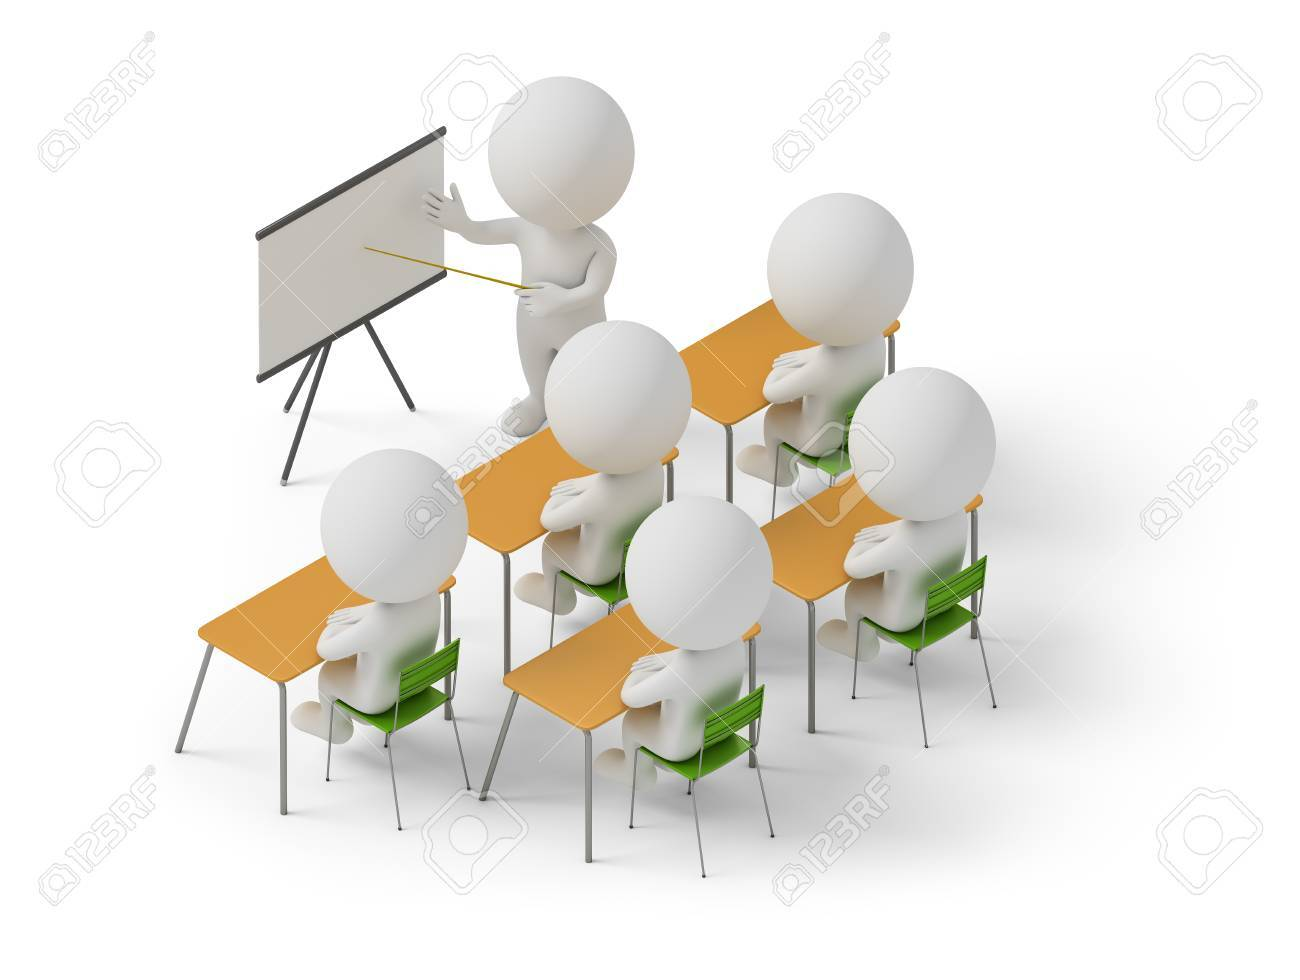 Isometric people studying in training courses. 3d image. White background. - 70408864